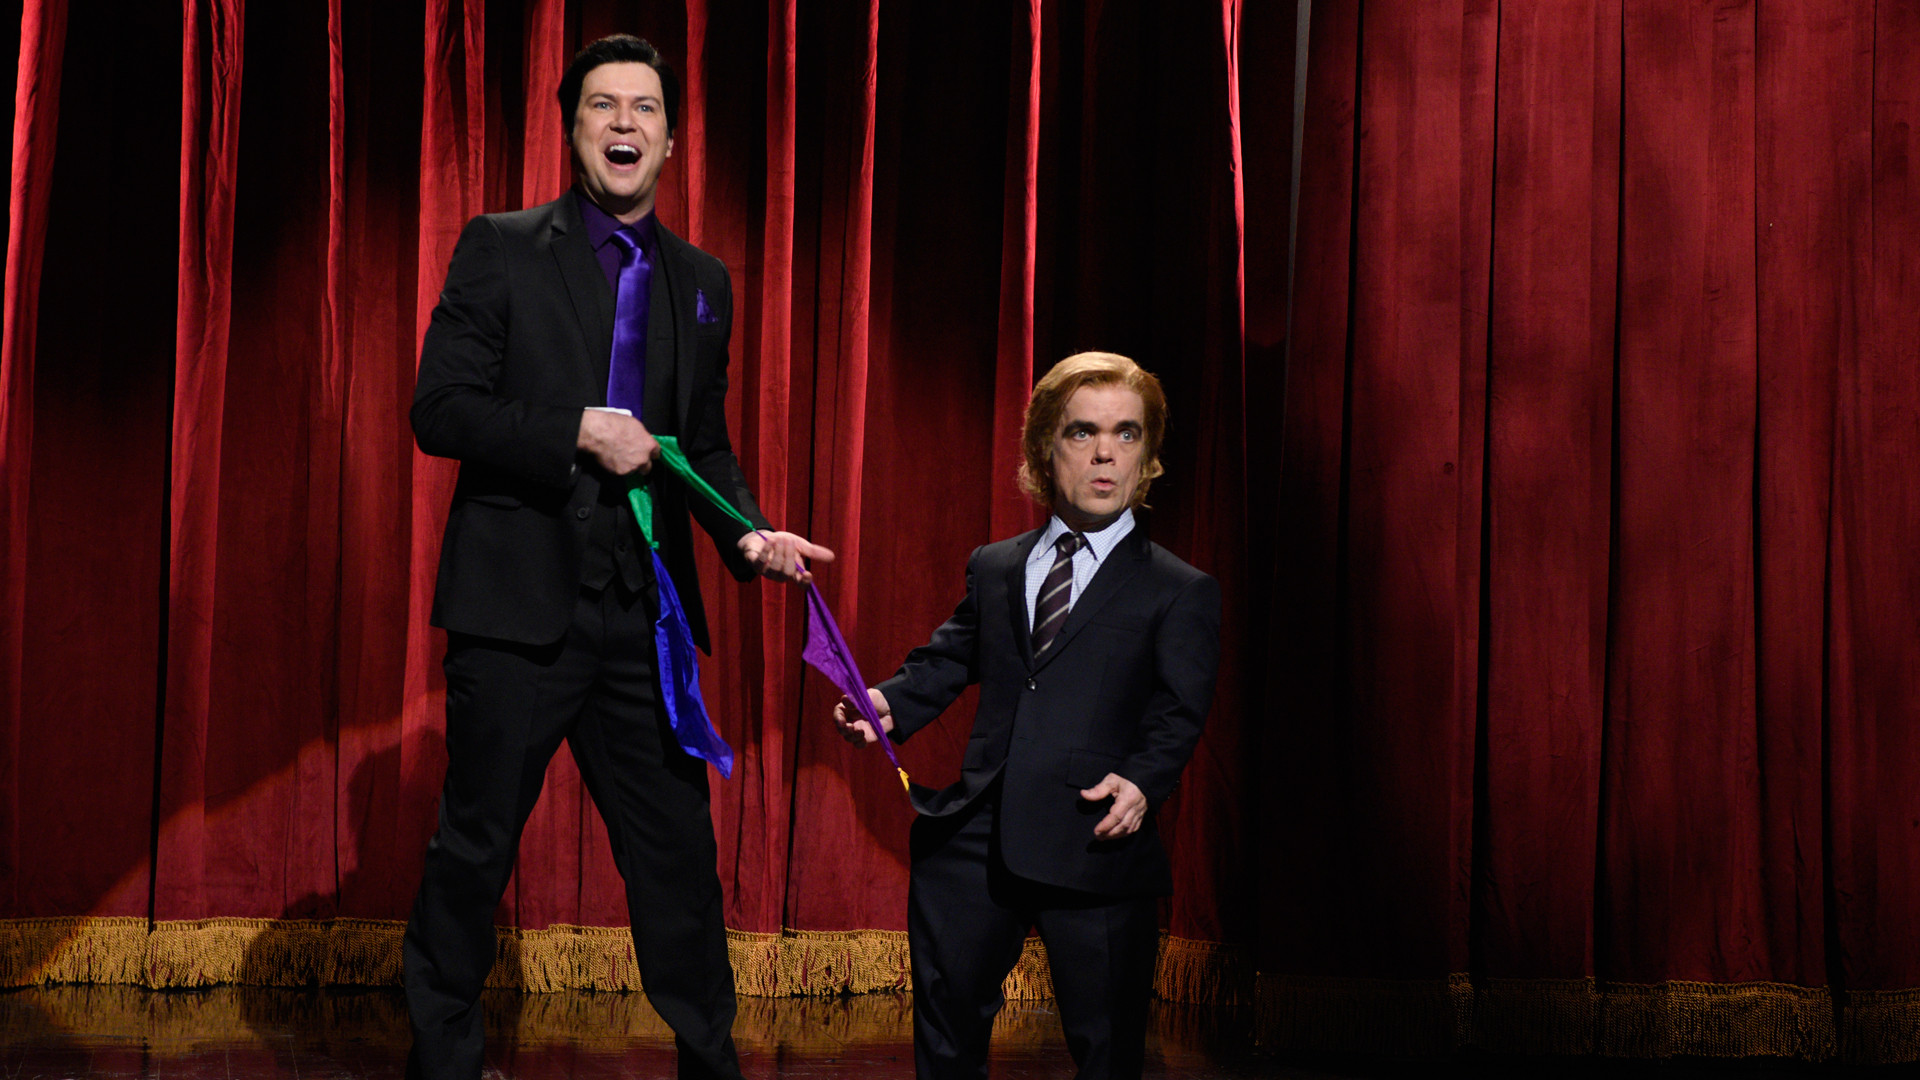 watch corporate magic show from saturday night live